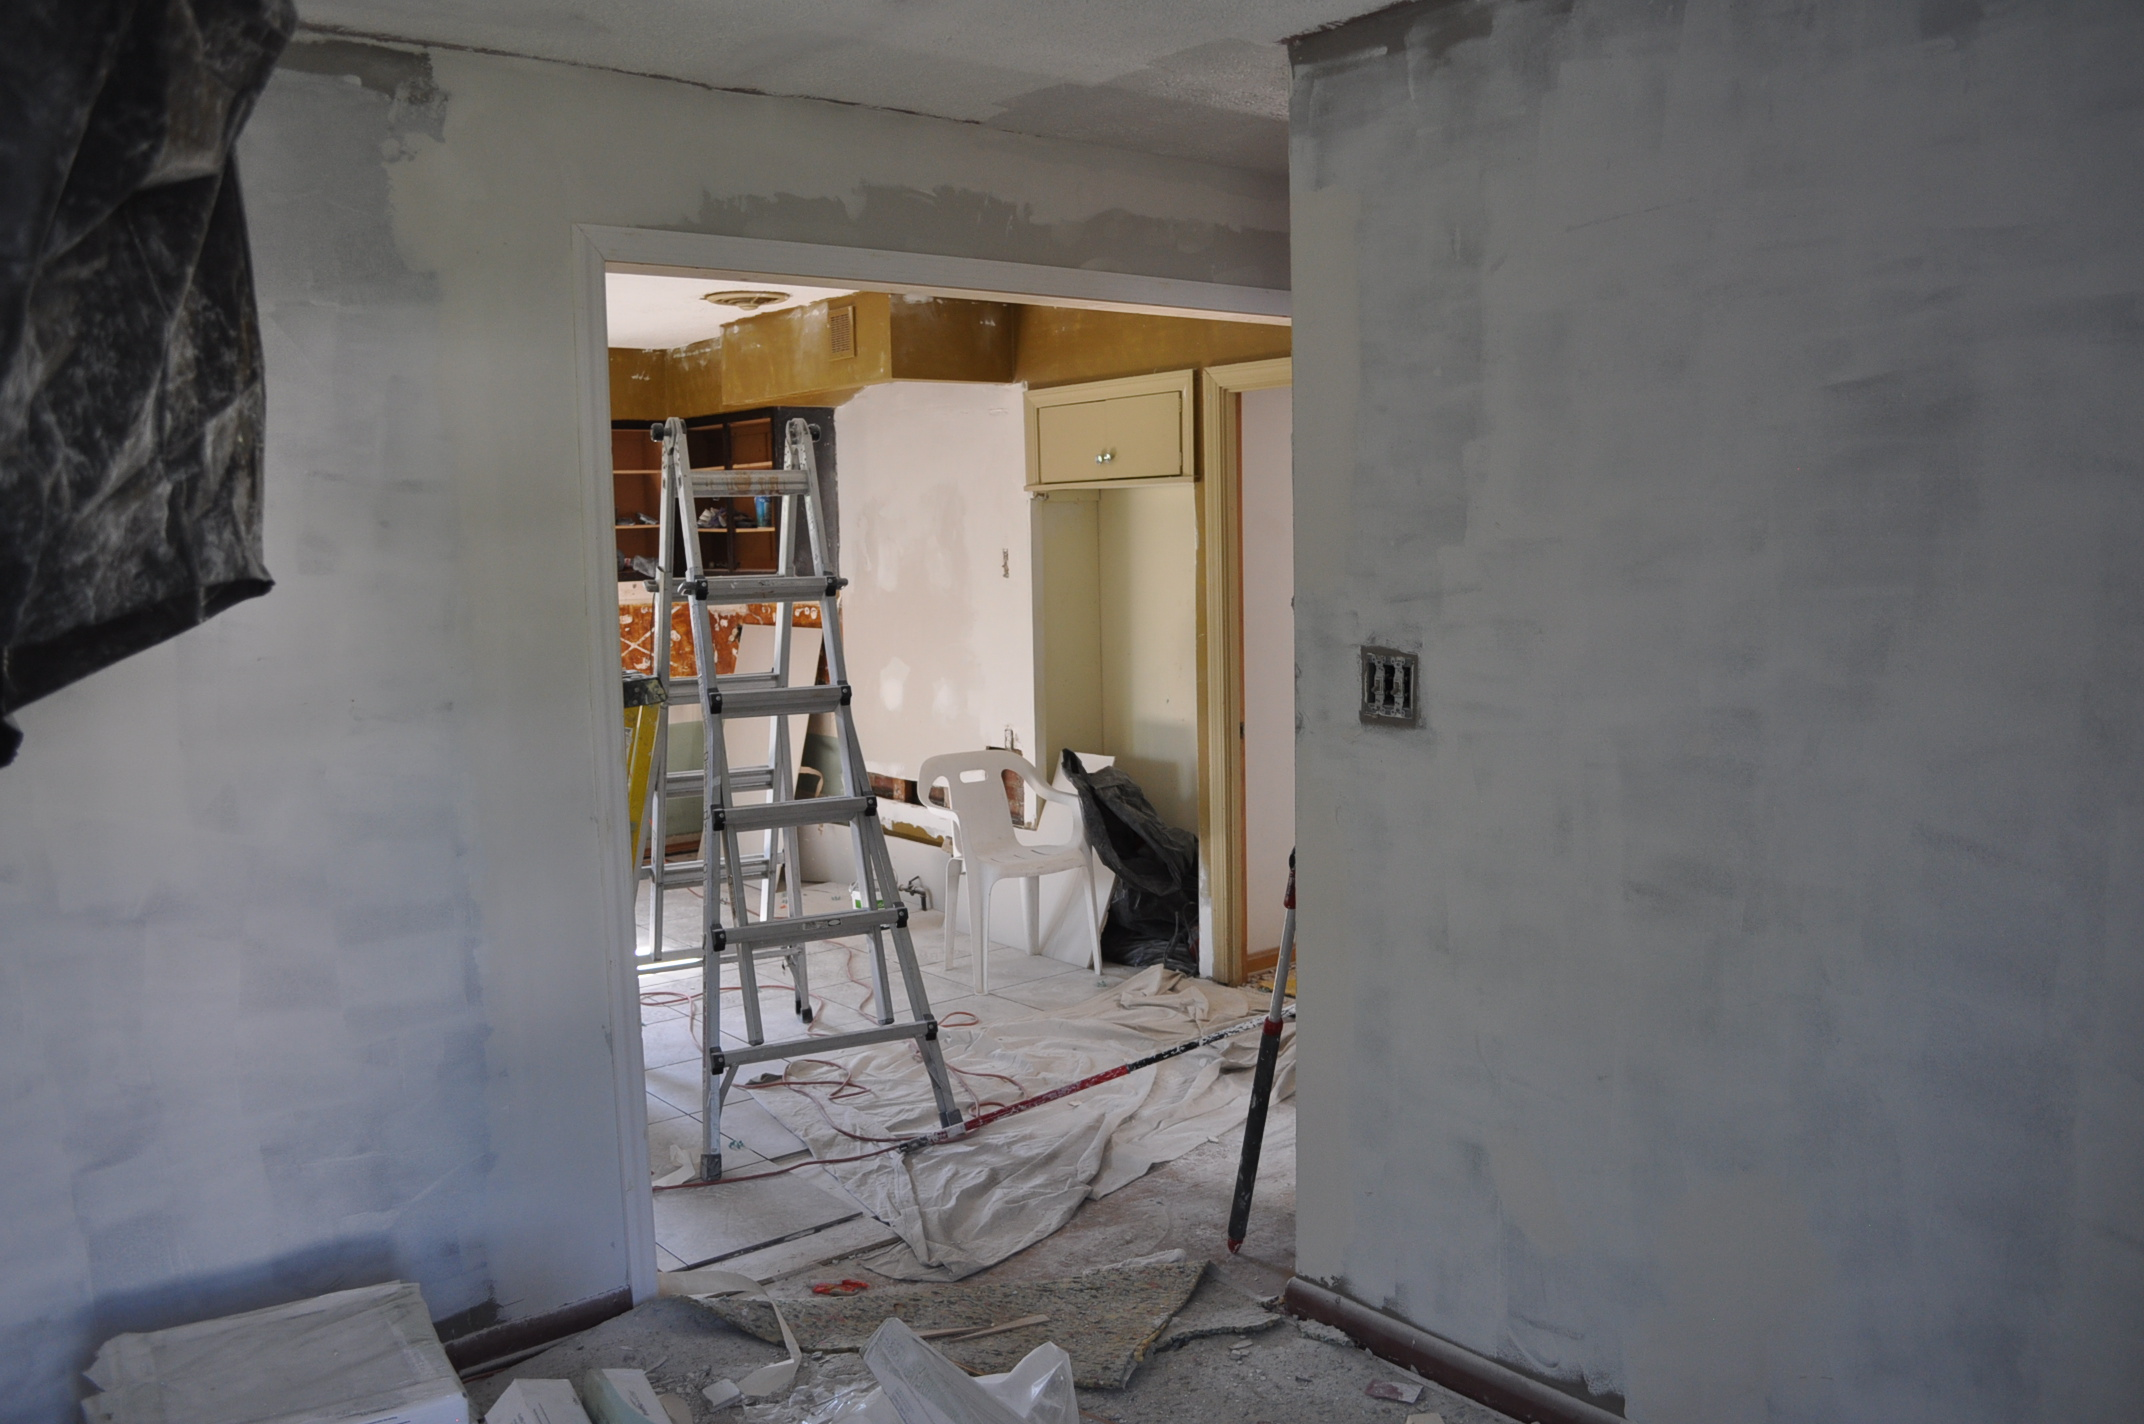 Home of top cleveland painting contractor ask the pros - How to prepare walls for painting in a few easy steps ...